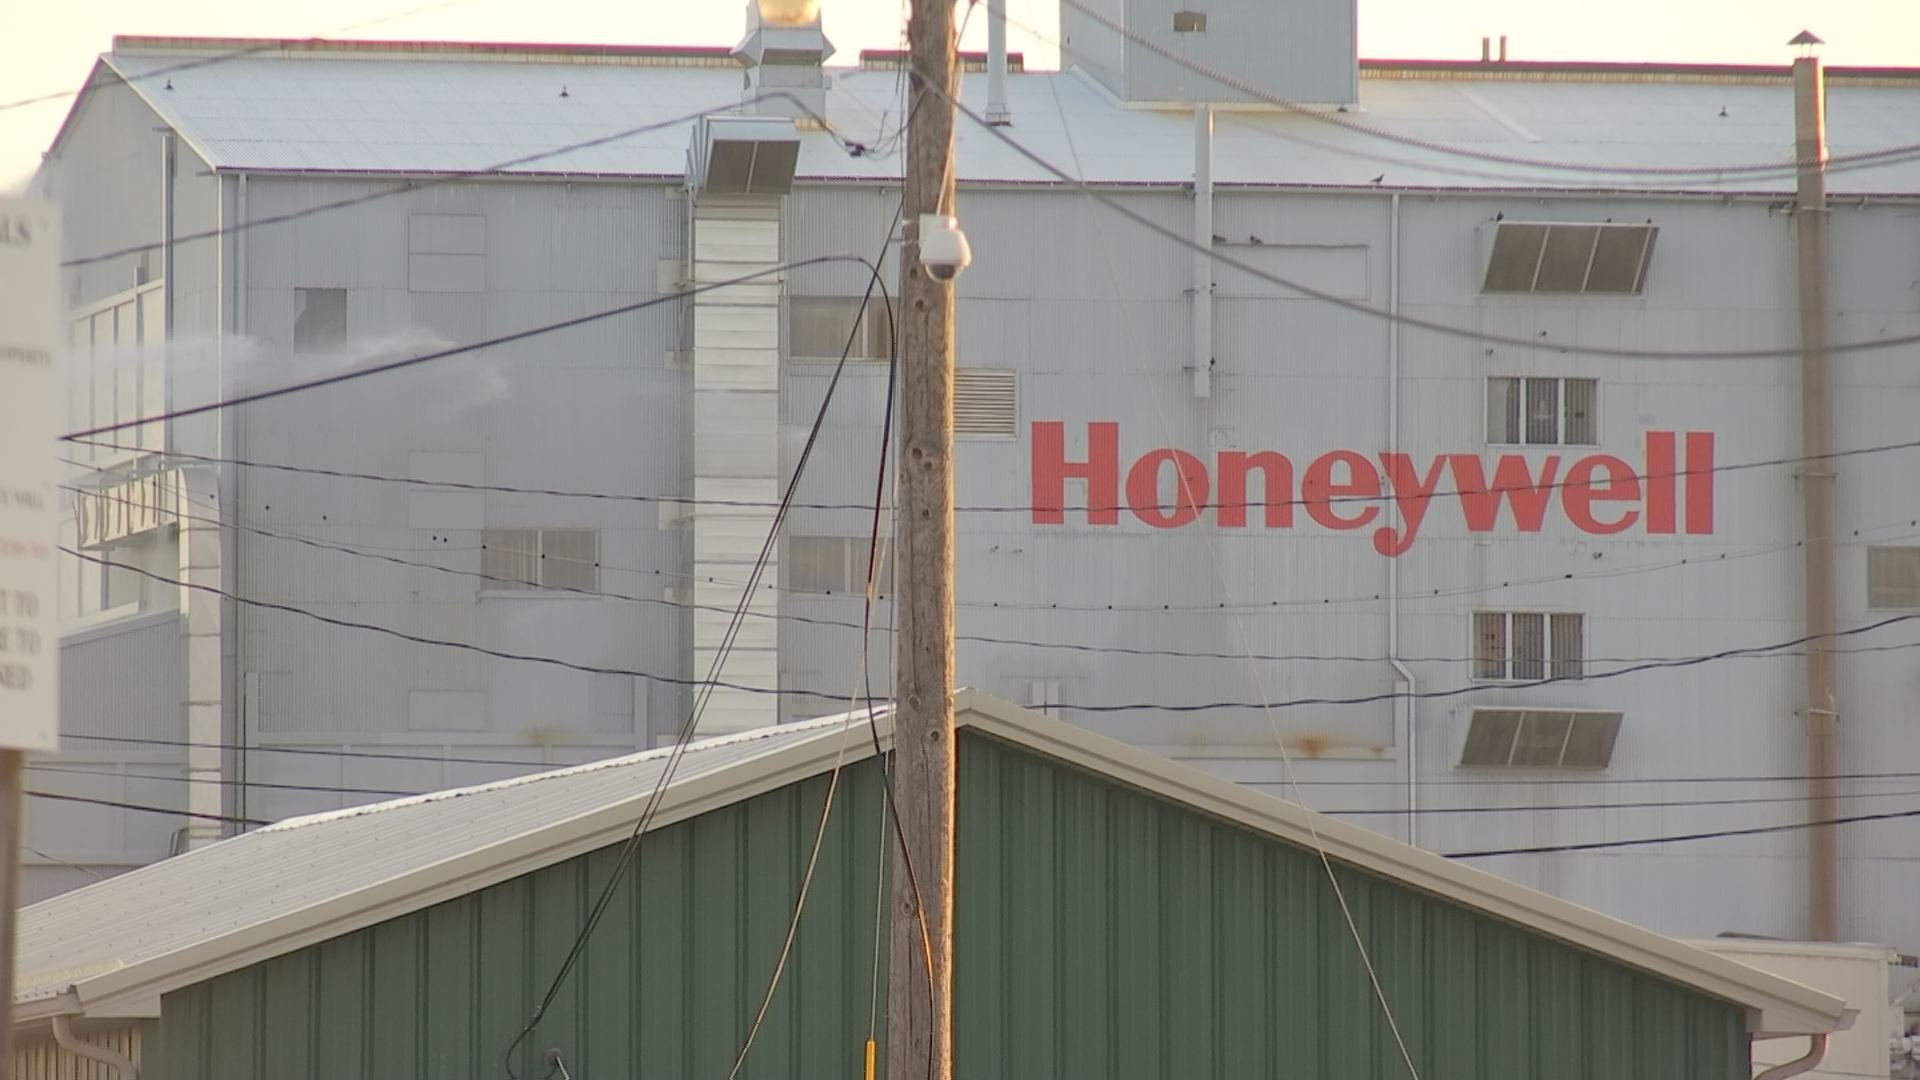 Honeywell to test on-site siren tomorrow - WPSD Local 6 ...